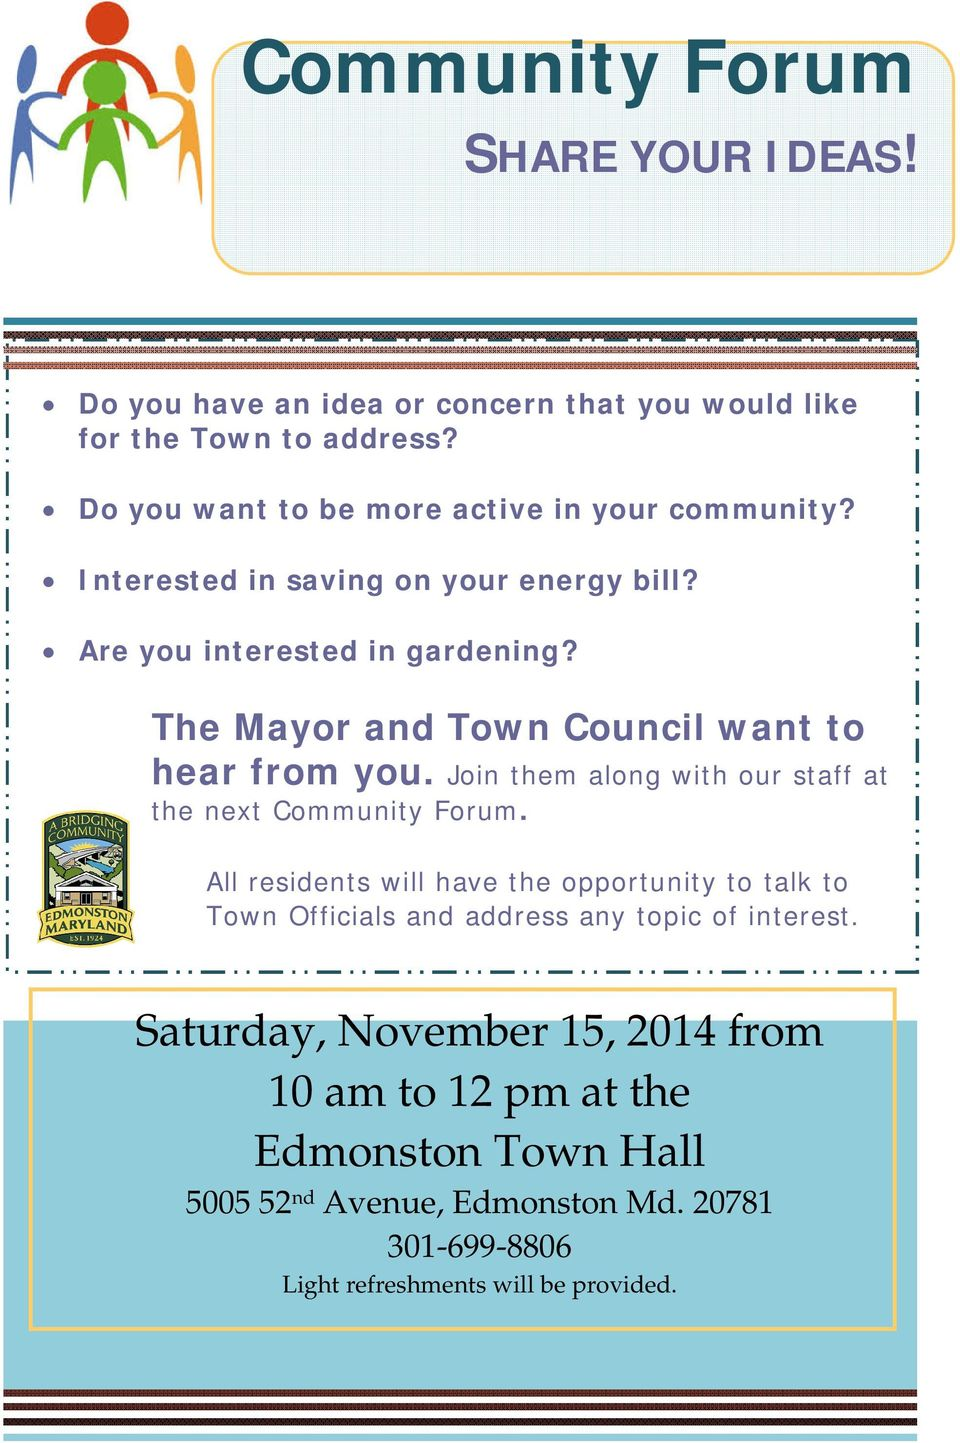 The Mayor and Town Council want to hear from you. Join them along with our staff at the next Community Forum.